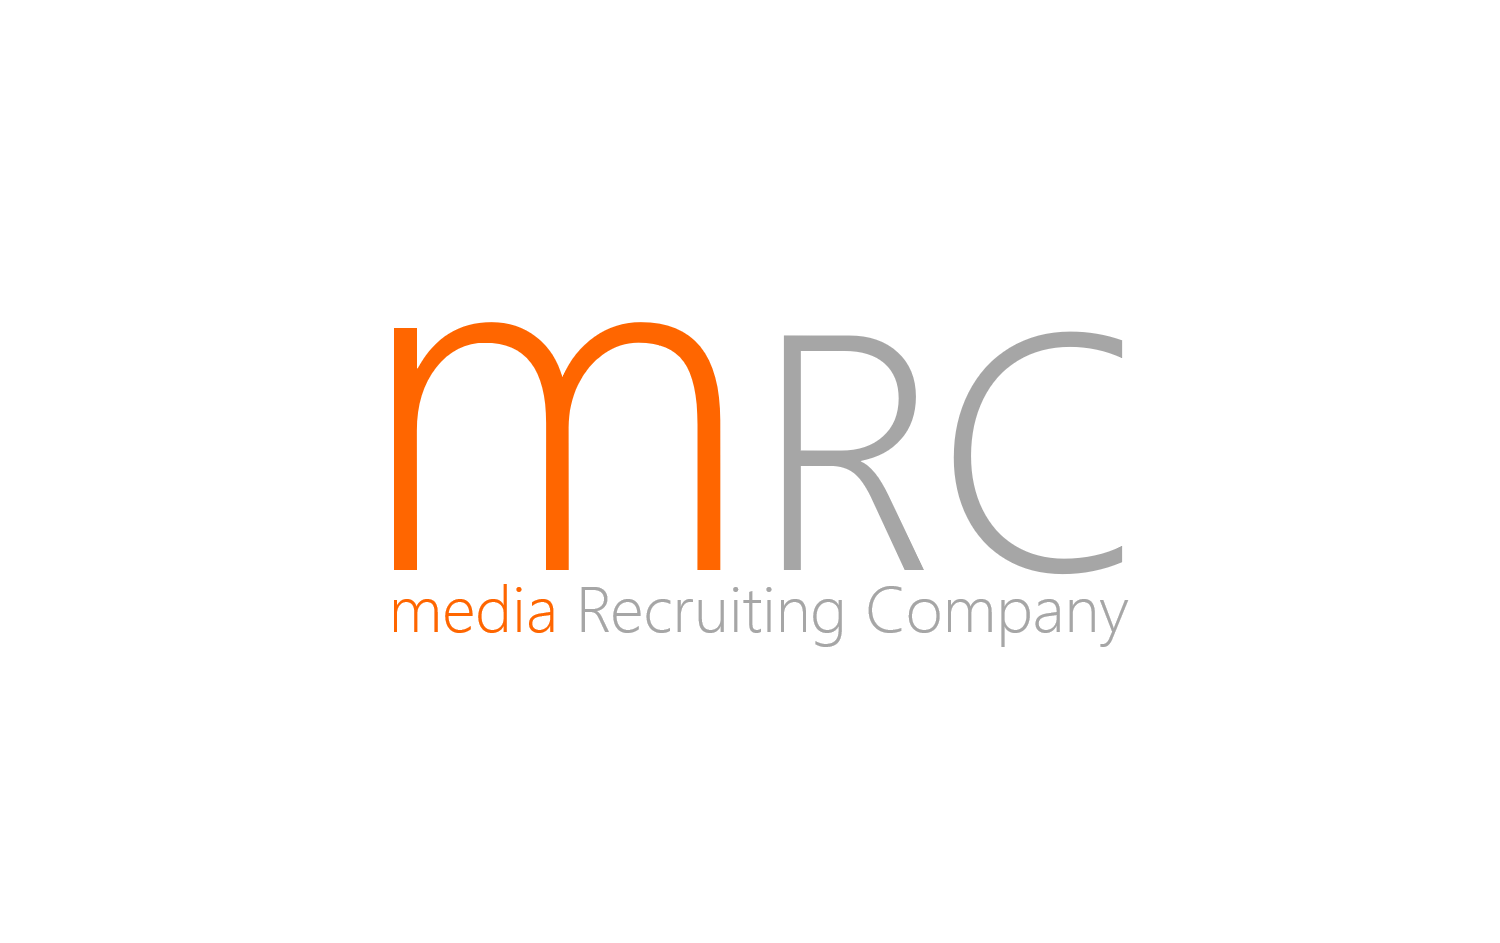 Logo Media Recruiting Company